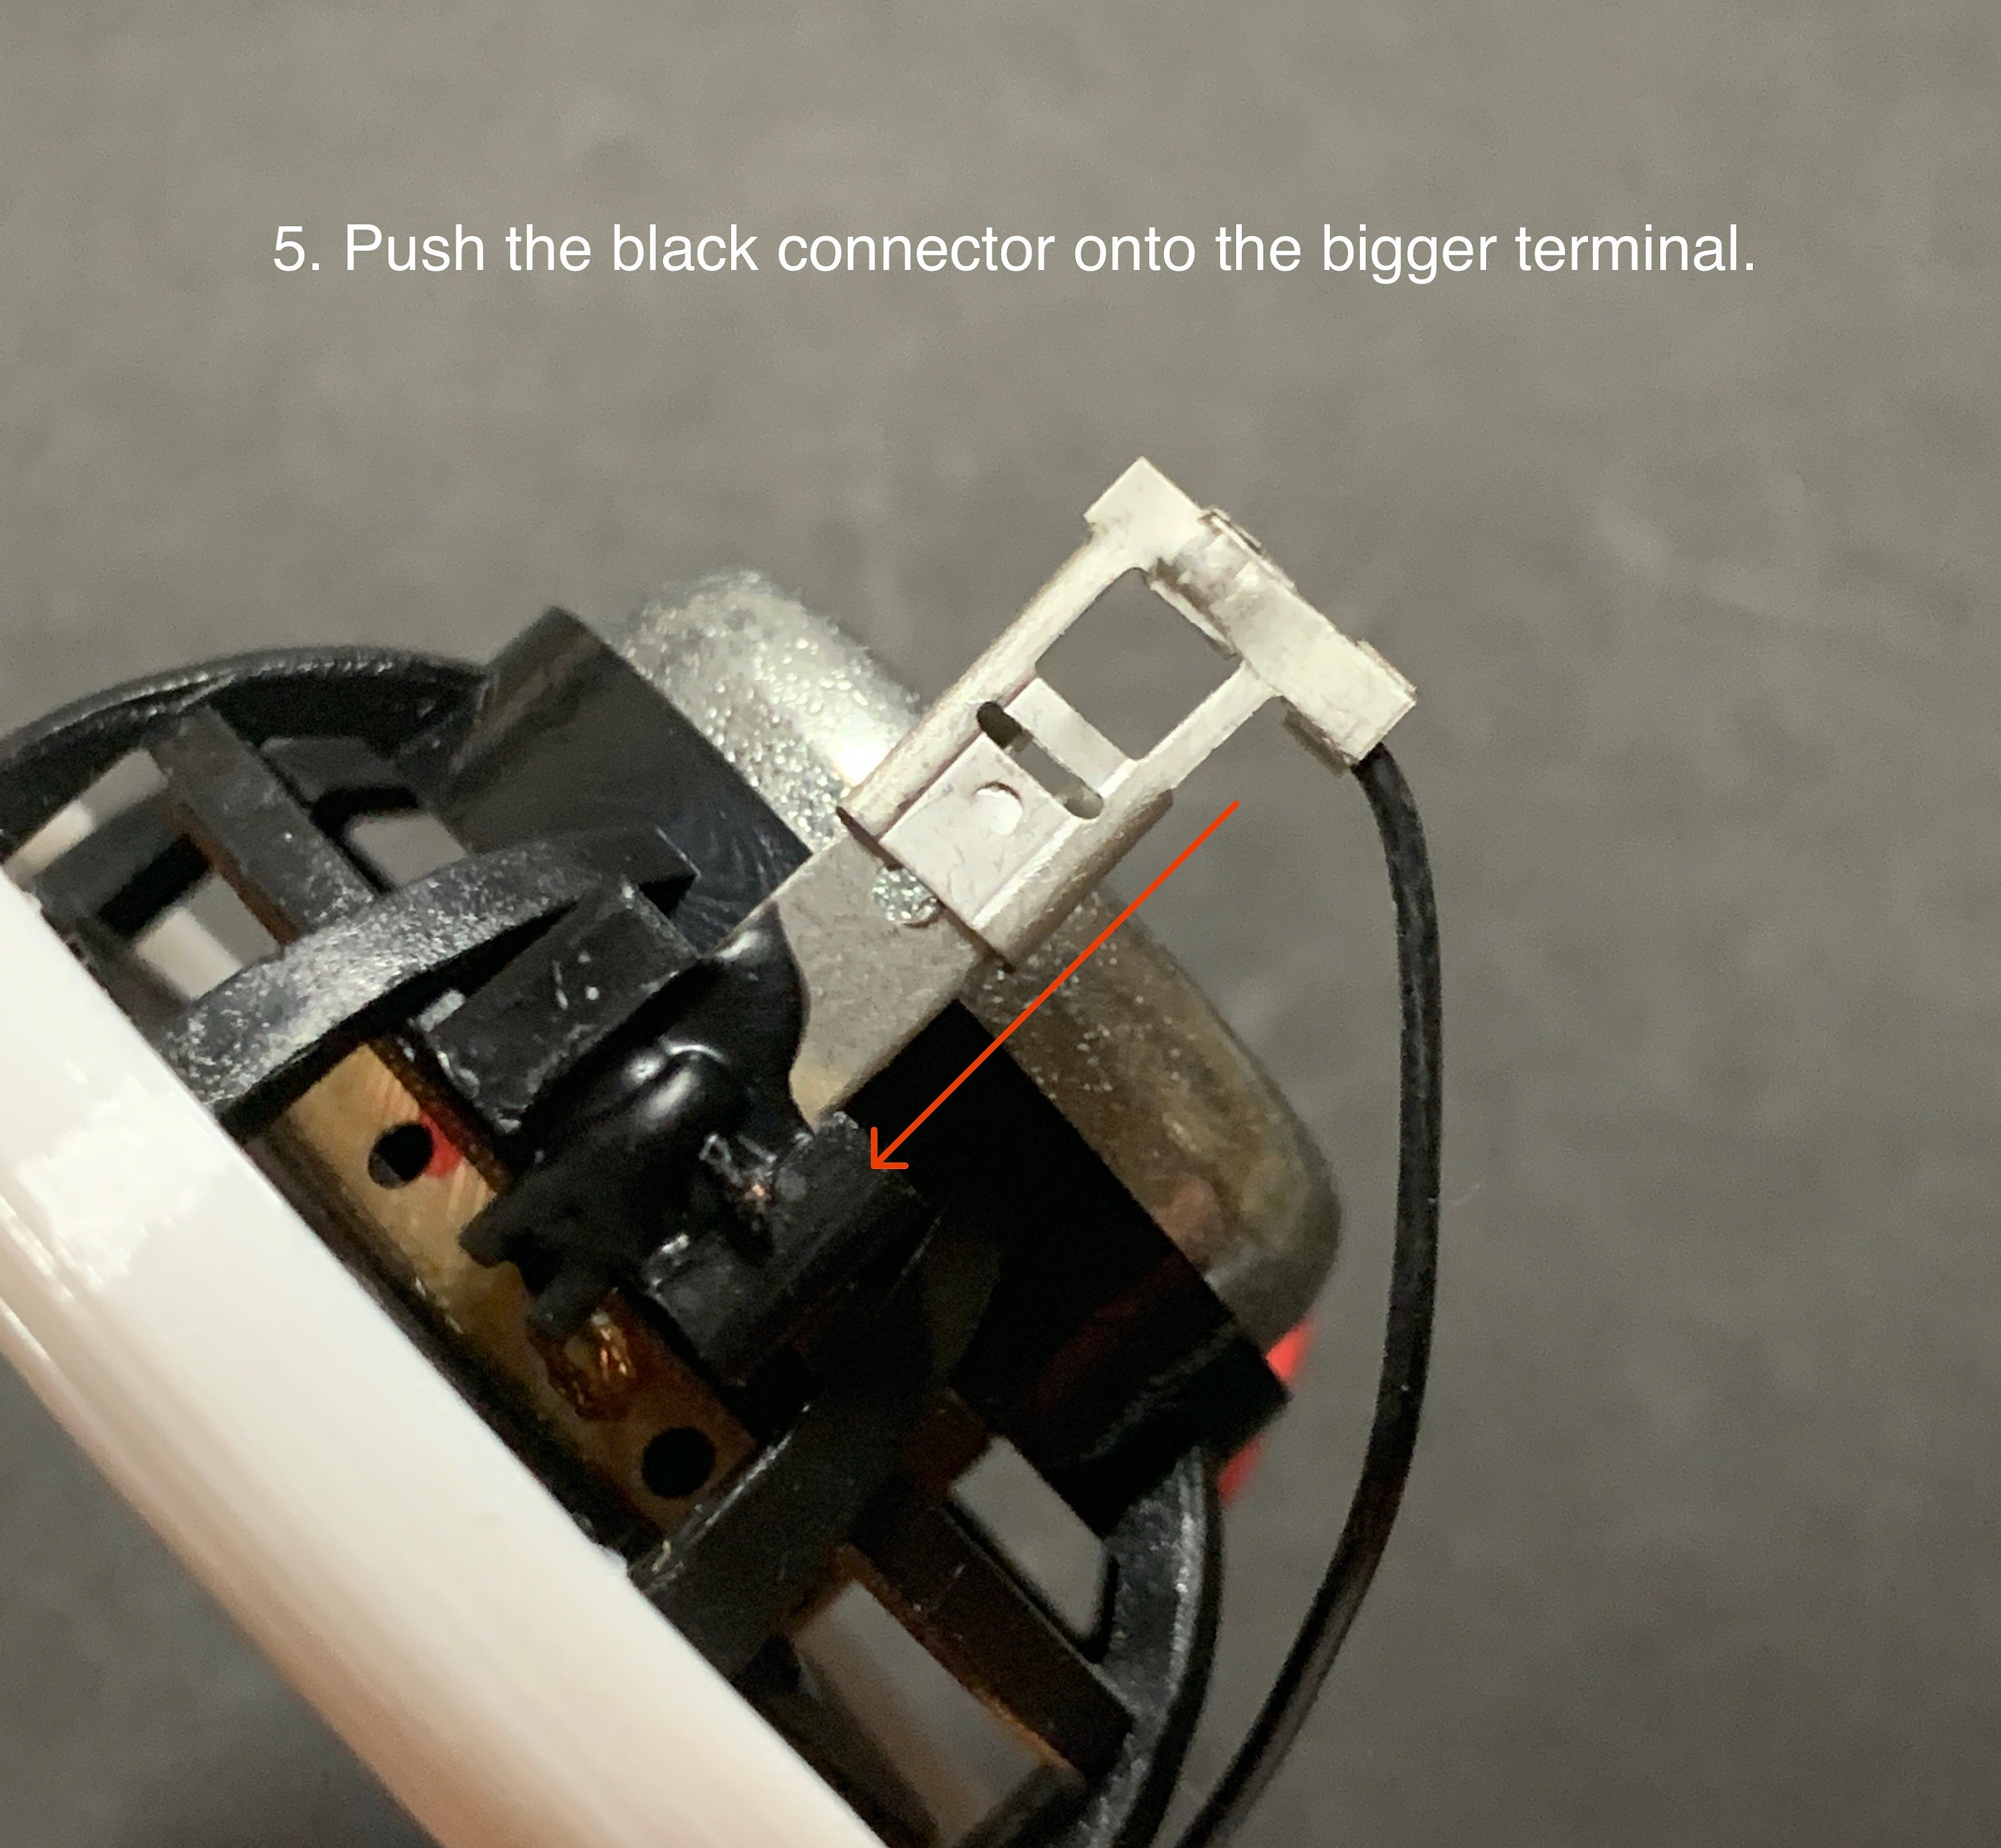 5. Push the black connector onto the bigger terminal.